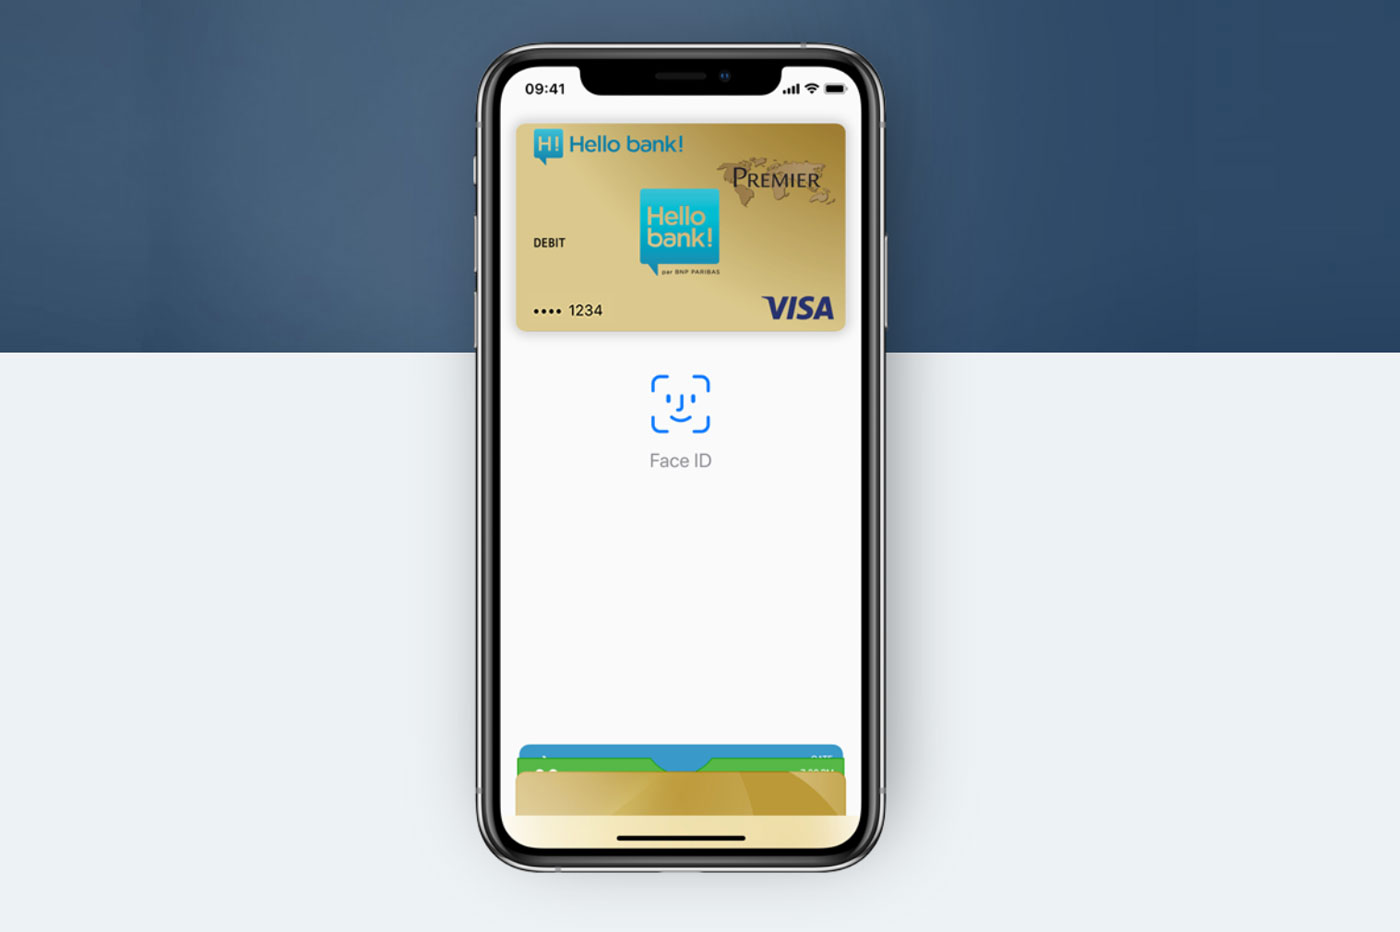 paiement mobile apple pay hello bank